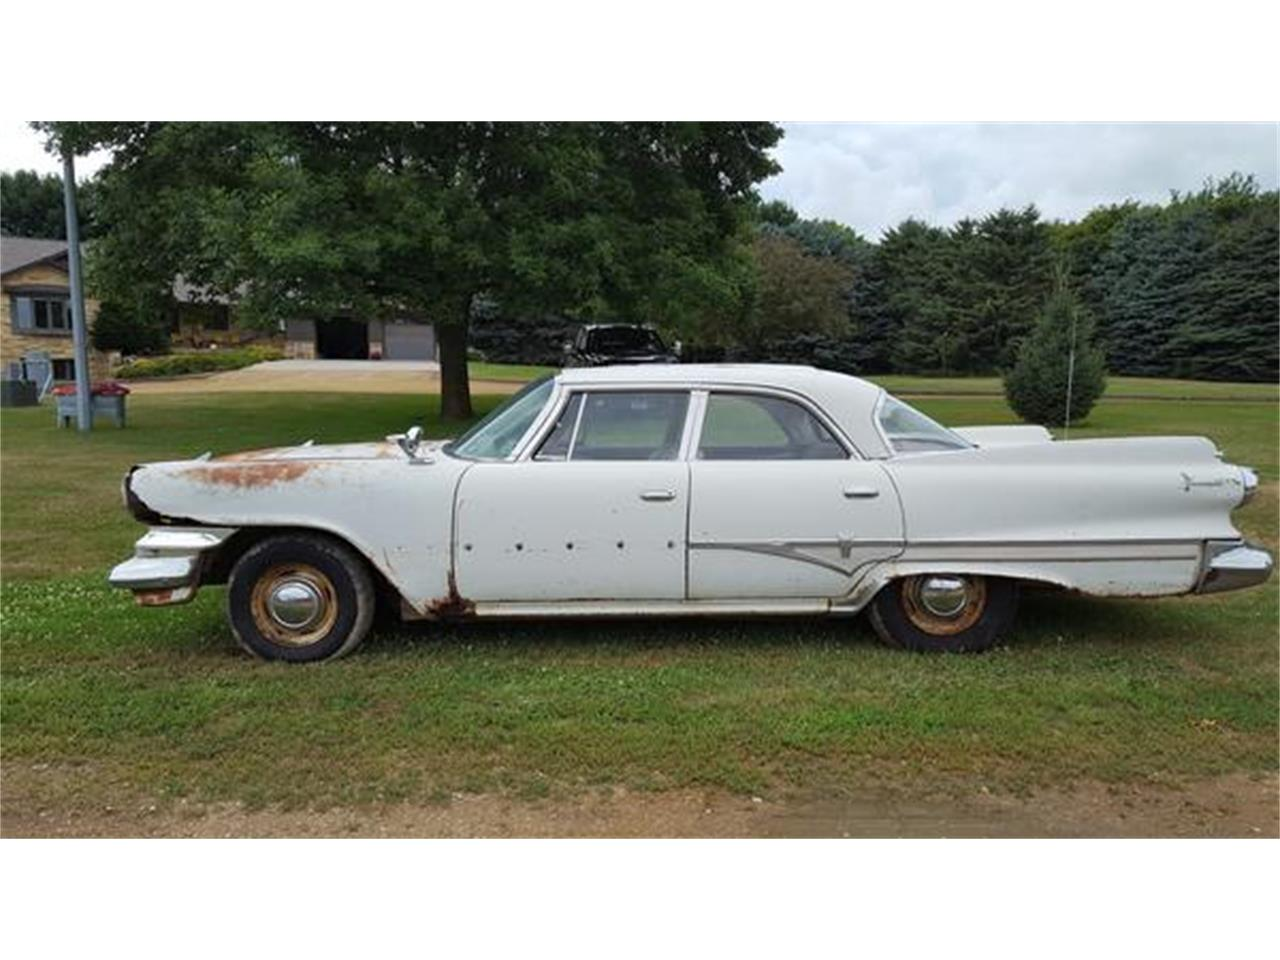 Large Picture of '60 Dodge Concept Car located in Minnesota - $2,500.00 - LGNM